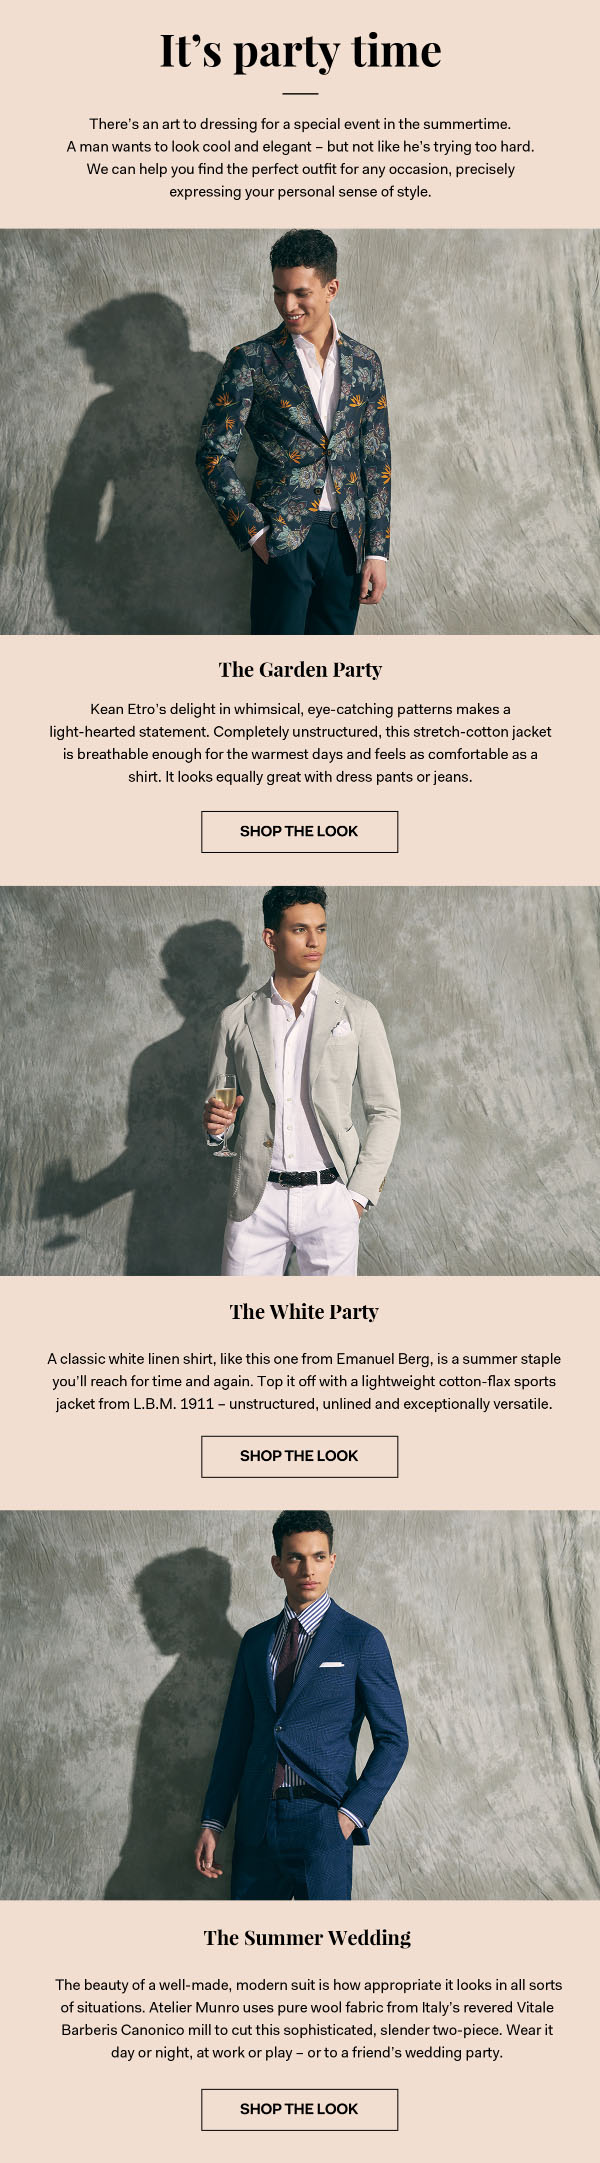 email-summer-event-dressing